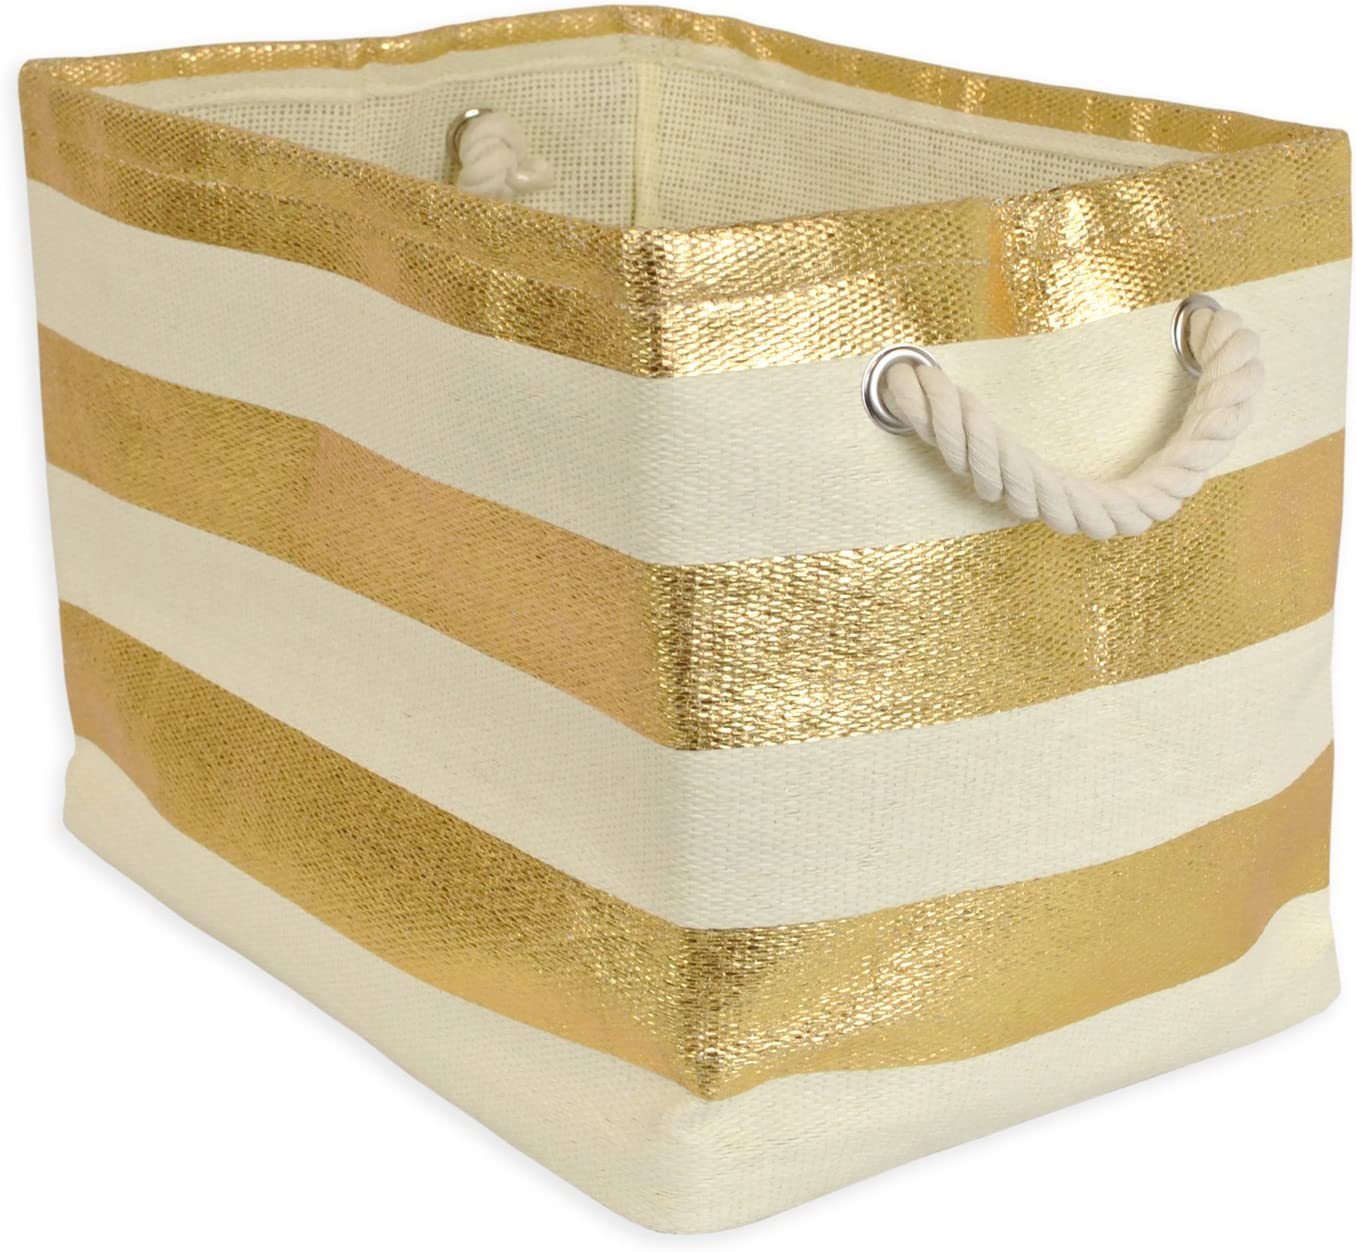 "DII Oversize Woven Paper Storage Basket or Bin, Collapsible & Convenient Home Organization Solution for Office, Bedroom, Closet, Toys, & Laundry (Large – 17x15x12""), Gold Rugby Stripe (CAMZ35705)"